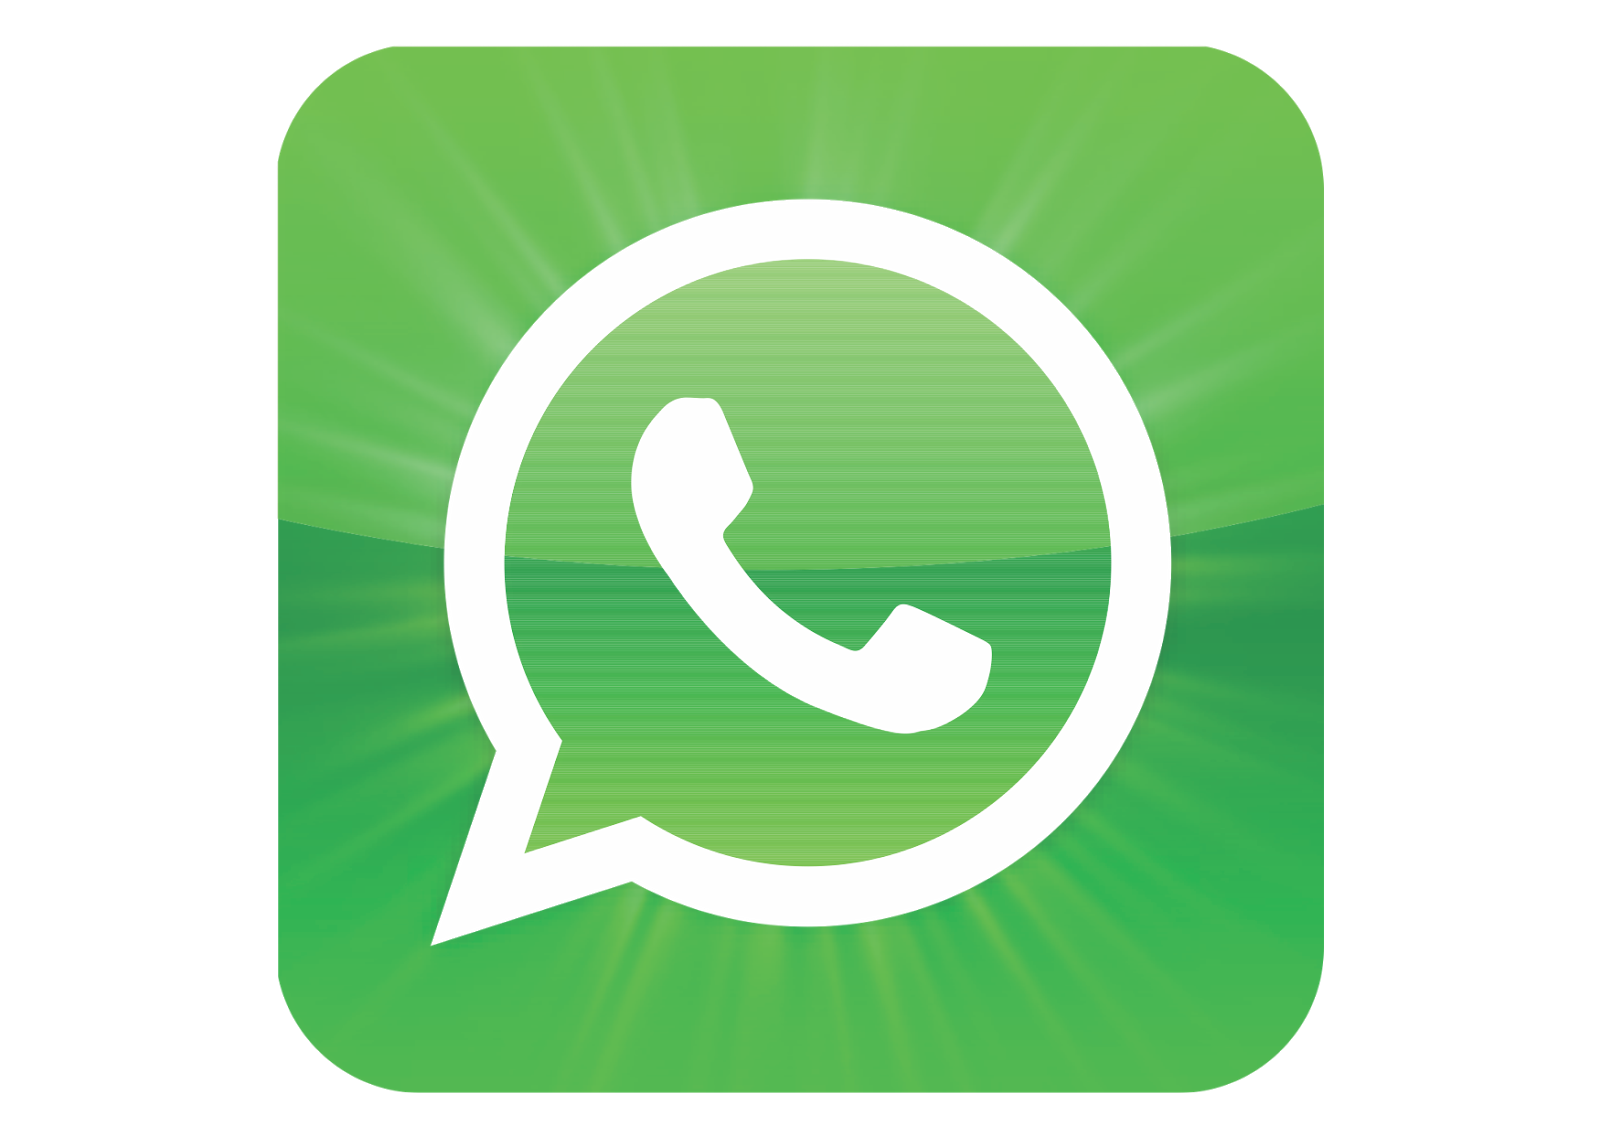 Logo whatsapp png. Images free download